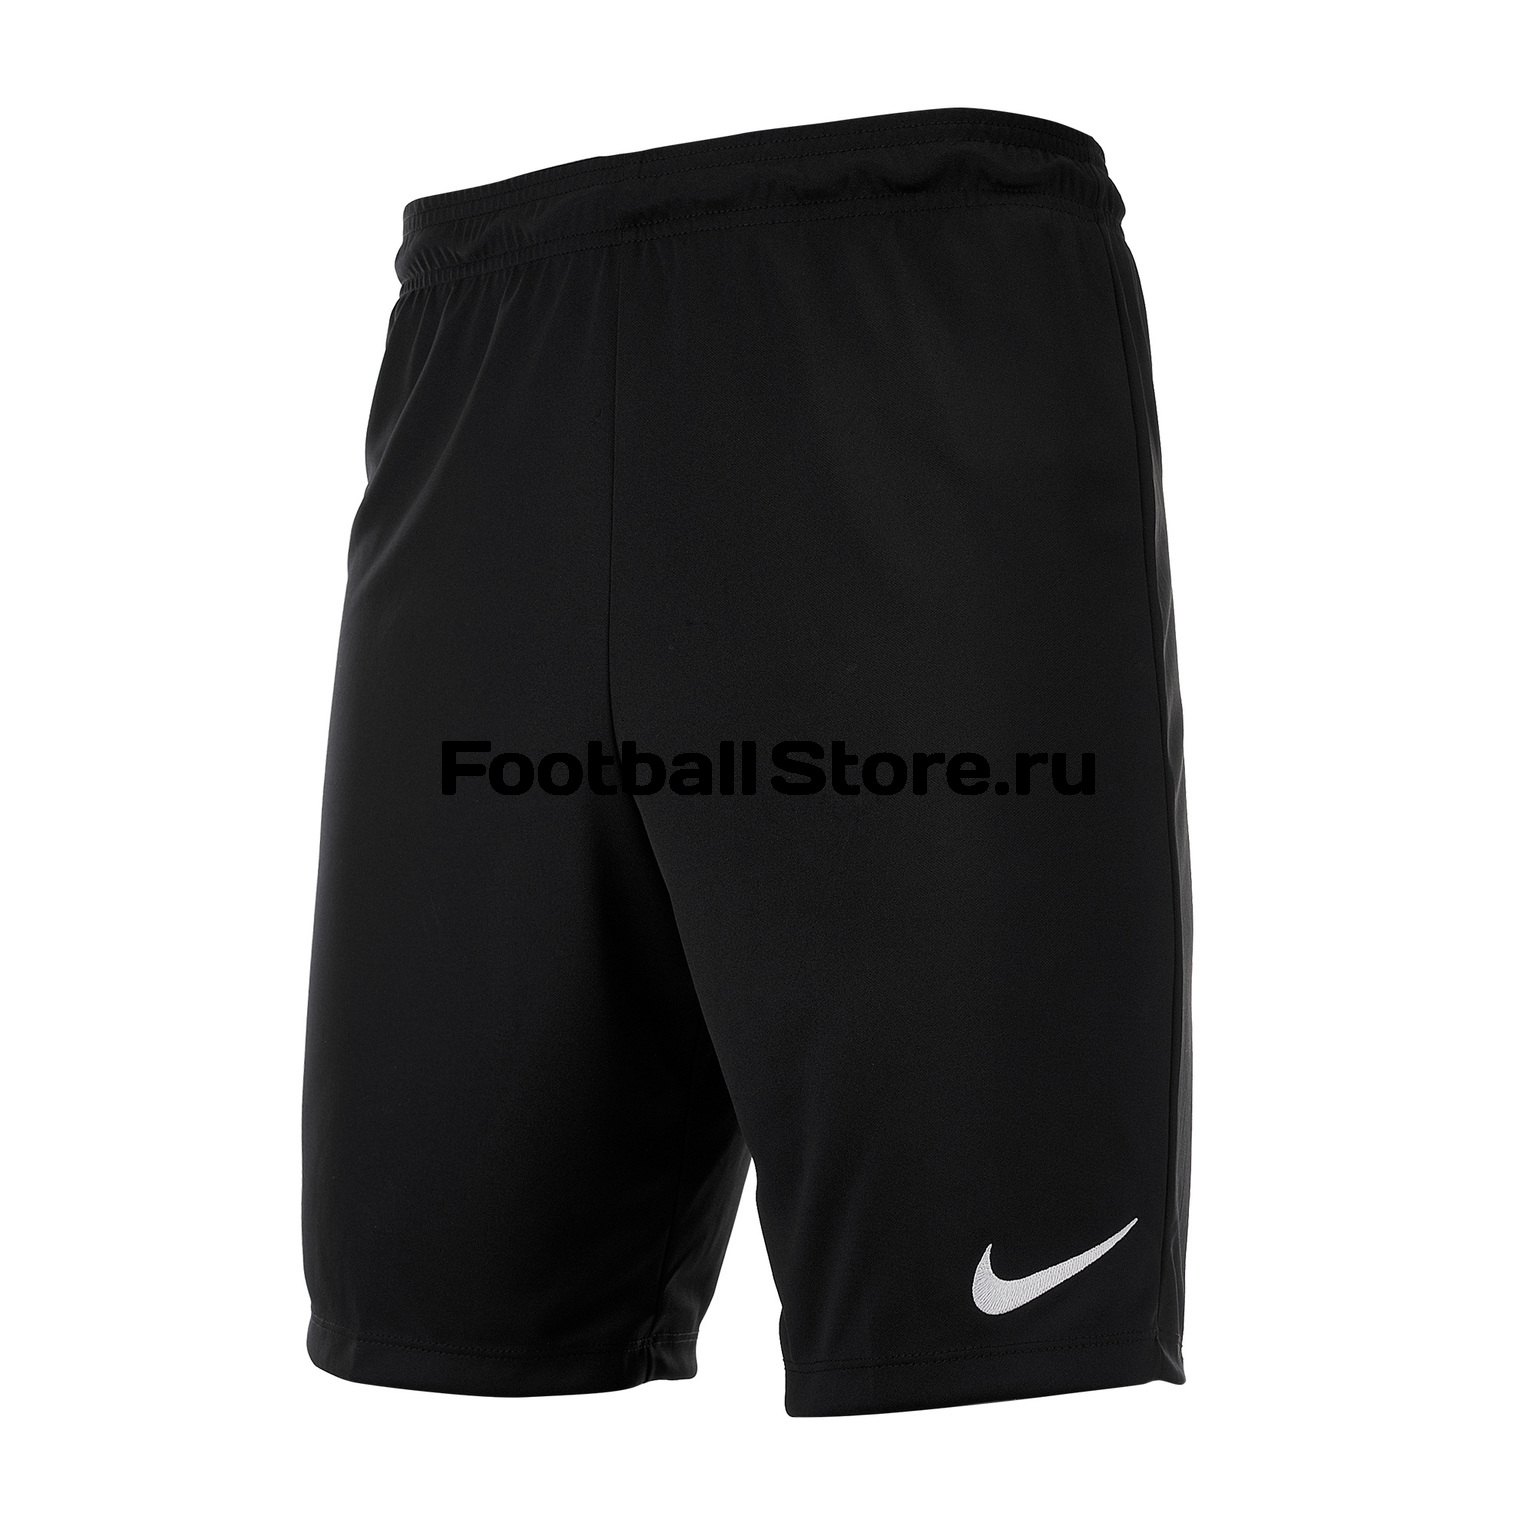 Шорты Nike Park II KNIT Short NB 725887-010